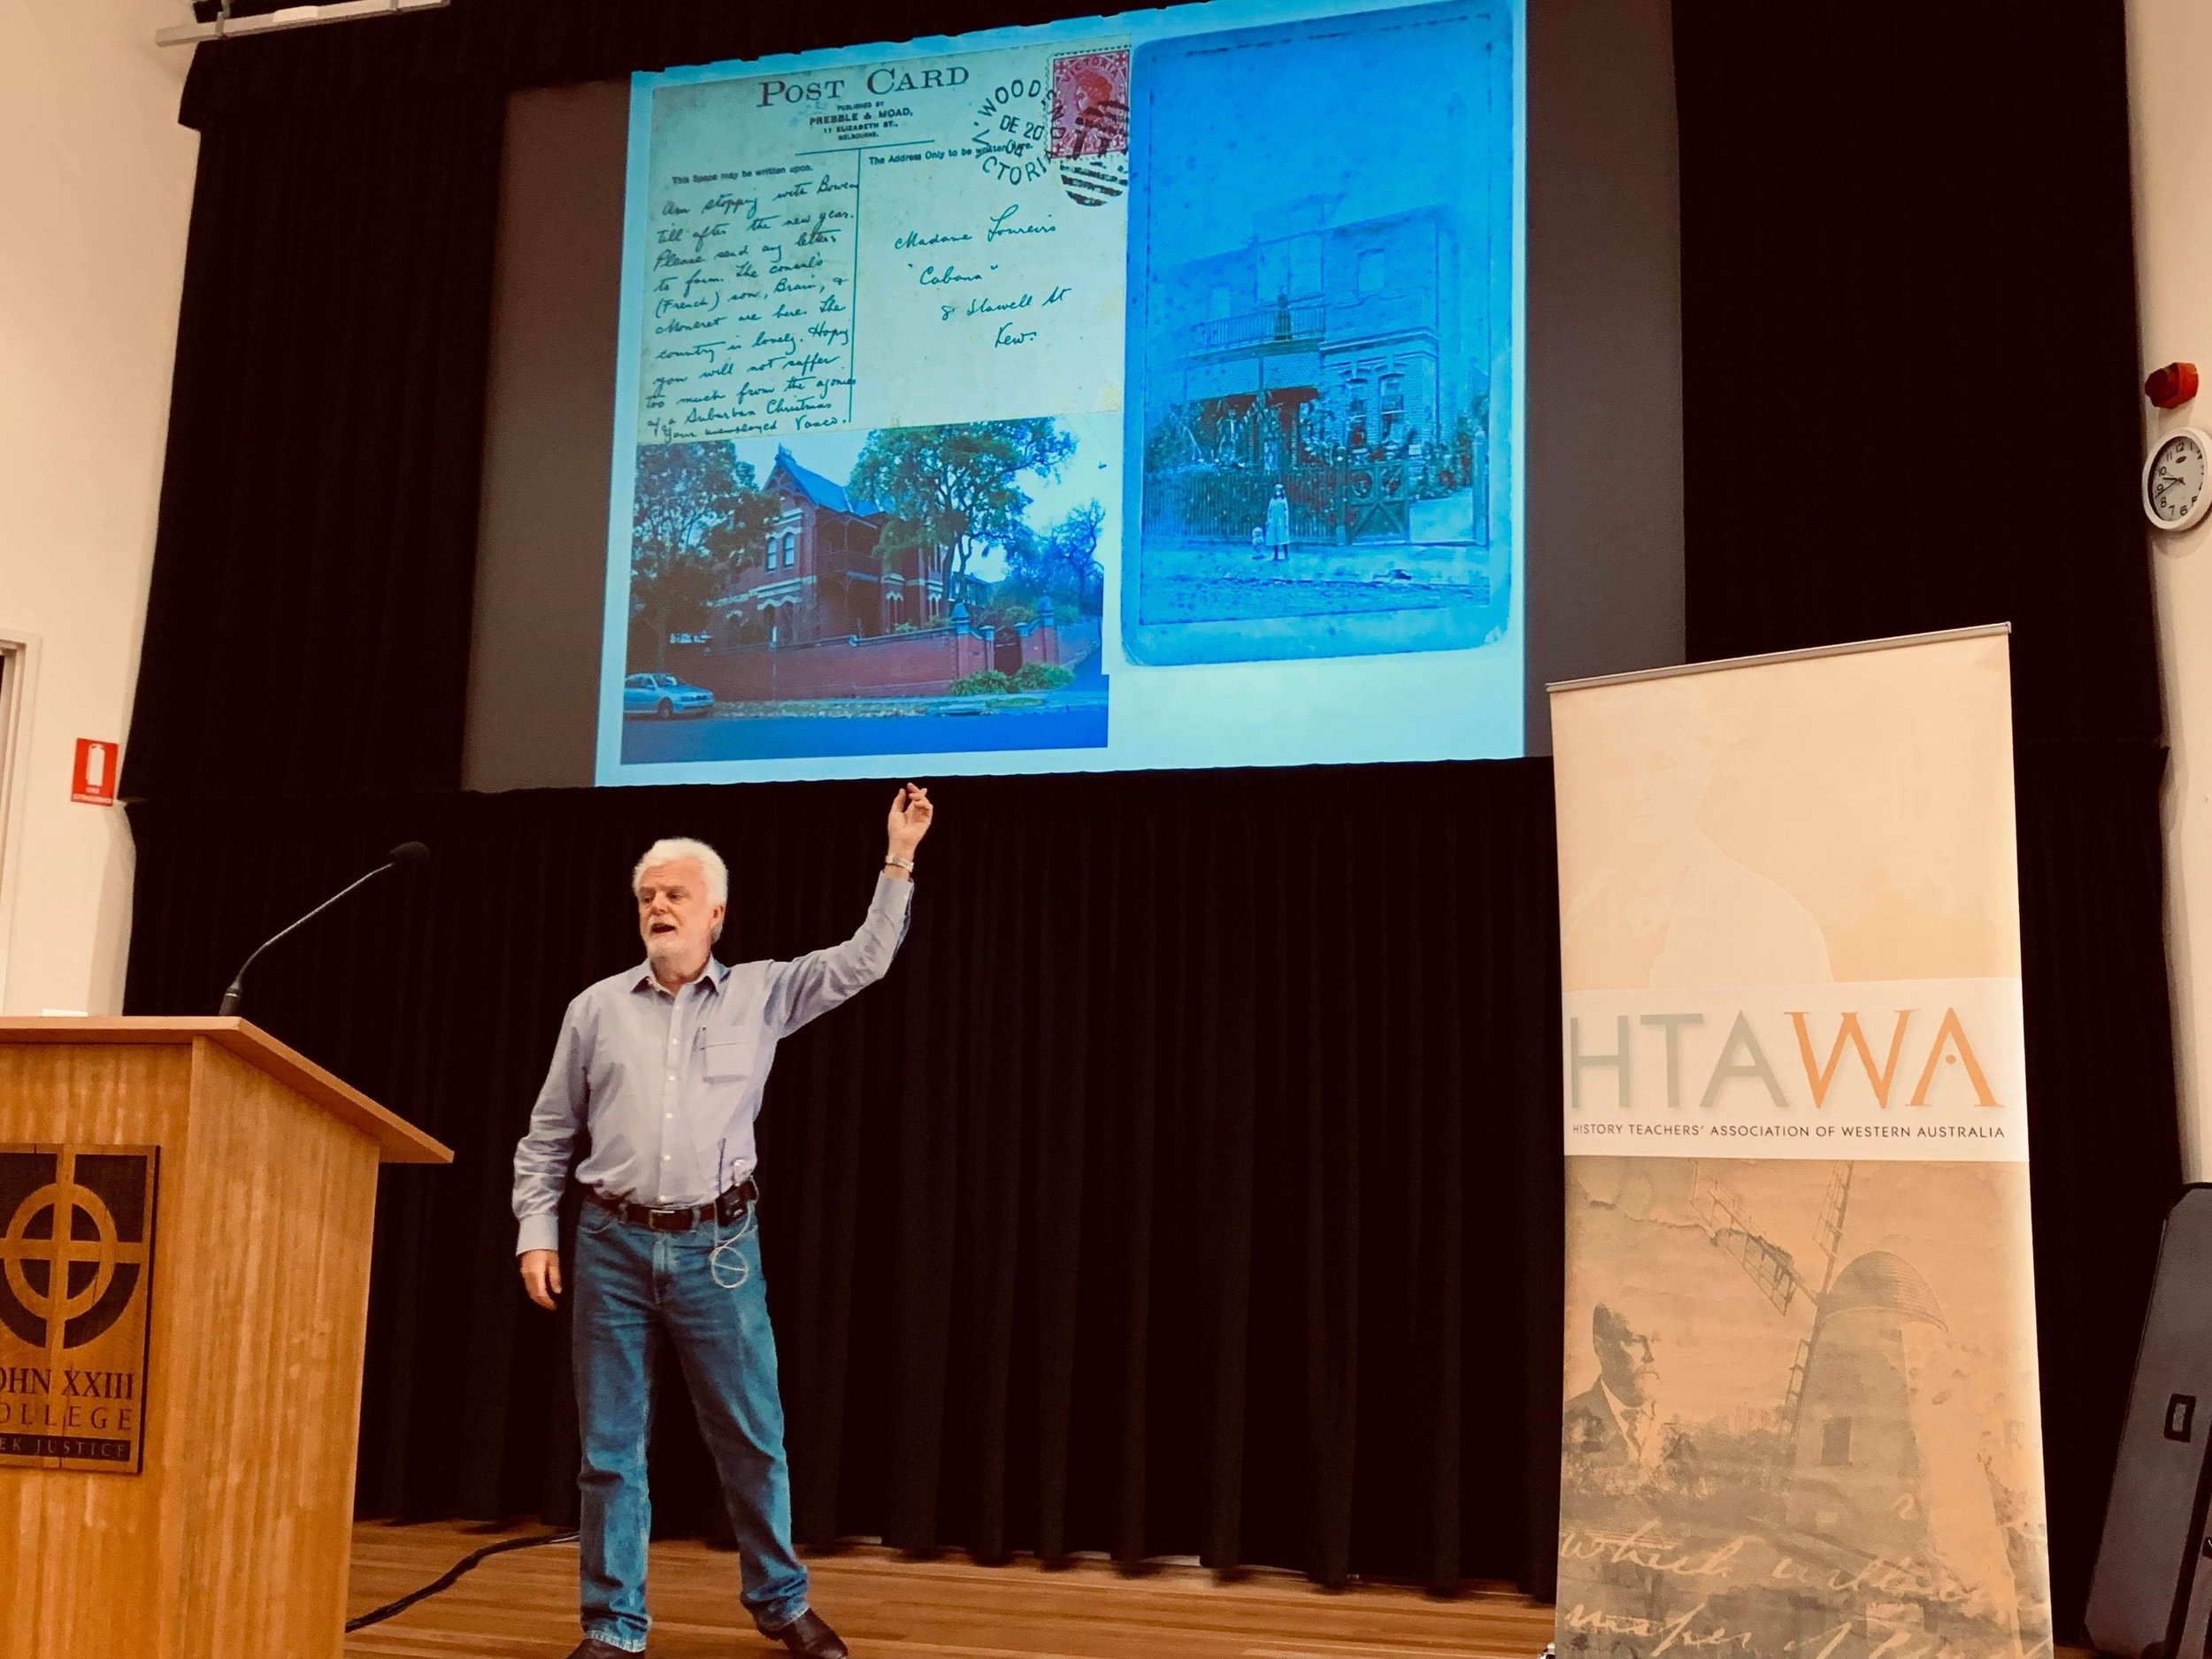 Dr Paul Kiem delivers his keynote address, 30 March 2019. Images courtesy of Vanessa Kirkham